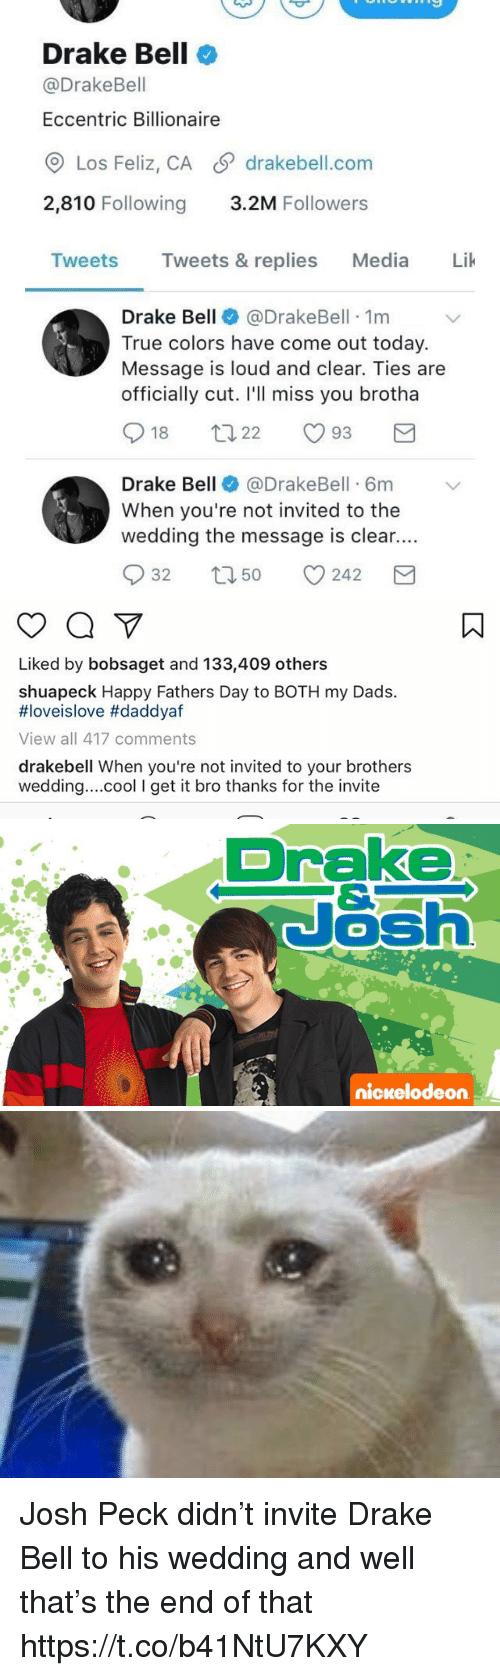 Josh Peck: Drake Bell  @Drake Bell  Eccentric Billionaire  Los Feliz, CA S drakebell.com  2,810 Following  3.2M Followers  Tweets  Tweets & replies  Media  Lik  Drake Bell  @Drake Bell 1m  True colors have come out today.  Message is loud and clear. Ties are  officially cut. I'll miss you brotha  S 18  93  22  Drake Bell  @DrakeBell 6m v  When you're not invited to the  wedding the message is clear.  S 32 t 50  242  M   Liked by bobsaget and 133,409 others  shuapeck Happy Fathers Day to BOTH my Dads.  HIoveislove #daddyaf  View all 417 comments  drakebell When you're not invited to your brothers  wedding... cool l get it  bro thanks for the invite   Drake  Nash  nickelodeon Josh Peck didn't invite Drake Bell to his wedding and well that's the end of that https://t.co/b41NtU7KXY